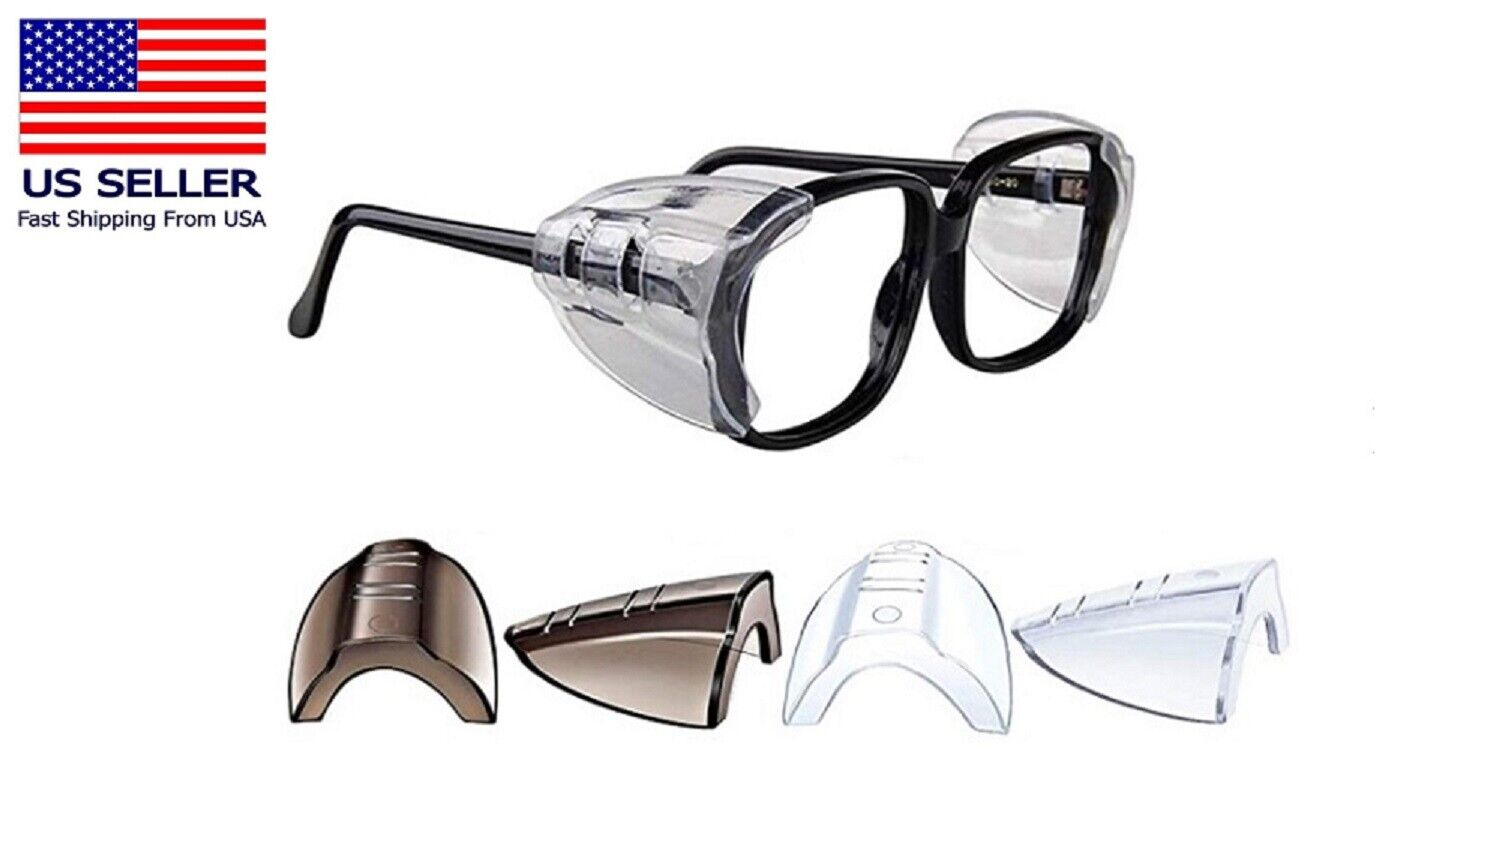 2 Pairs Side Shields for Eye Glasses Slip On Safety Glasses Shield Universal US Business & Industrial